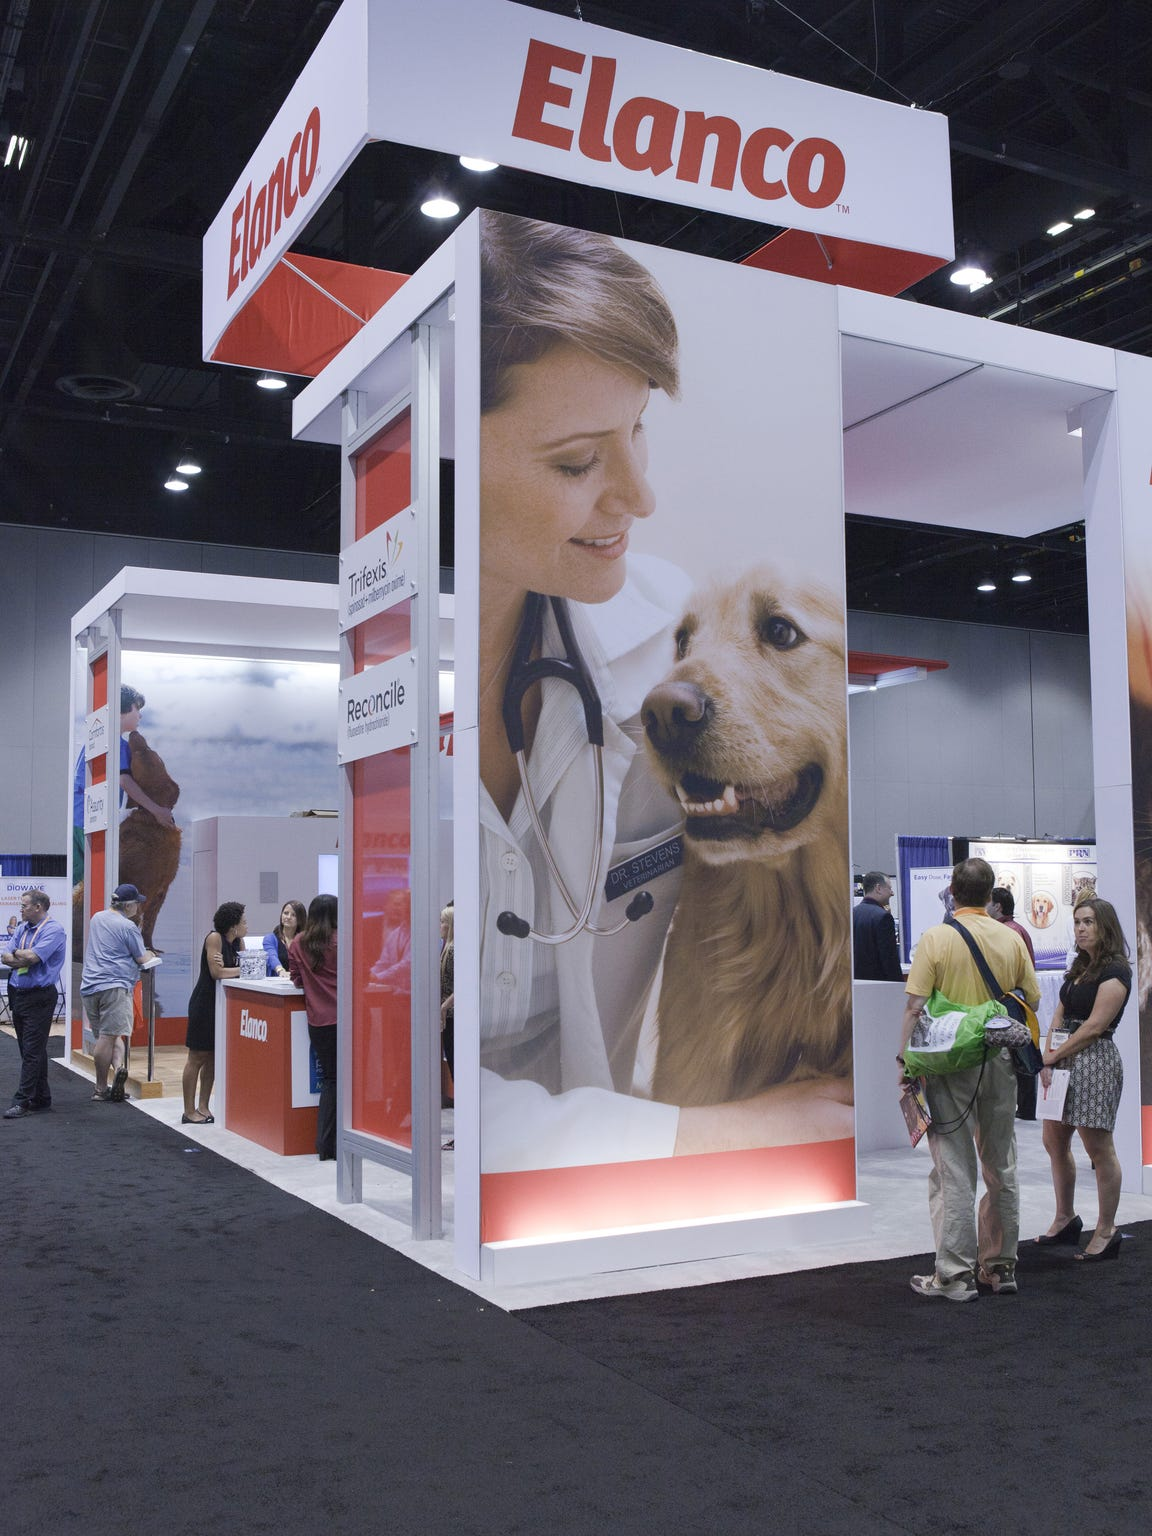 The Elanco booth at the American Veterinary Medical Association's annual vonvention at McCormick Place in Chicago, July  2013.